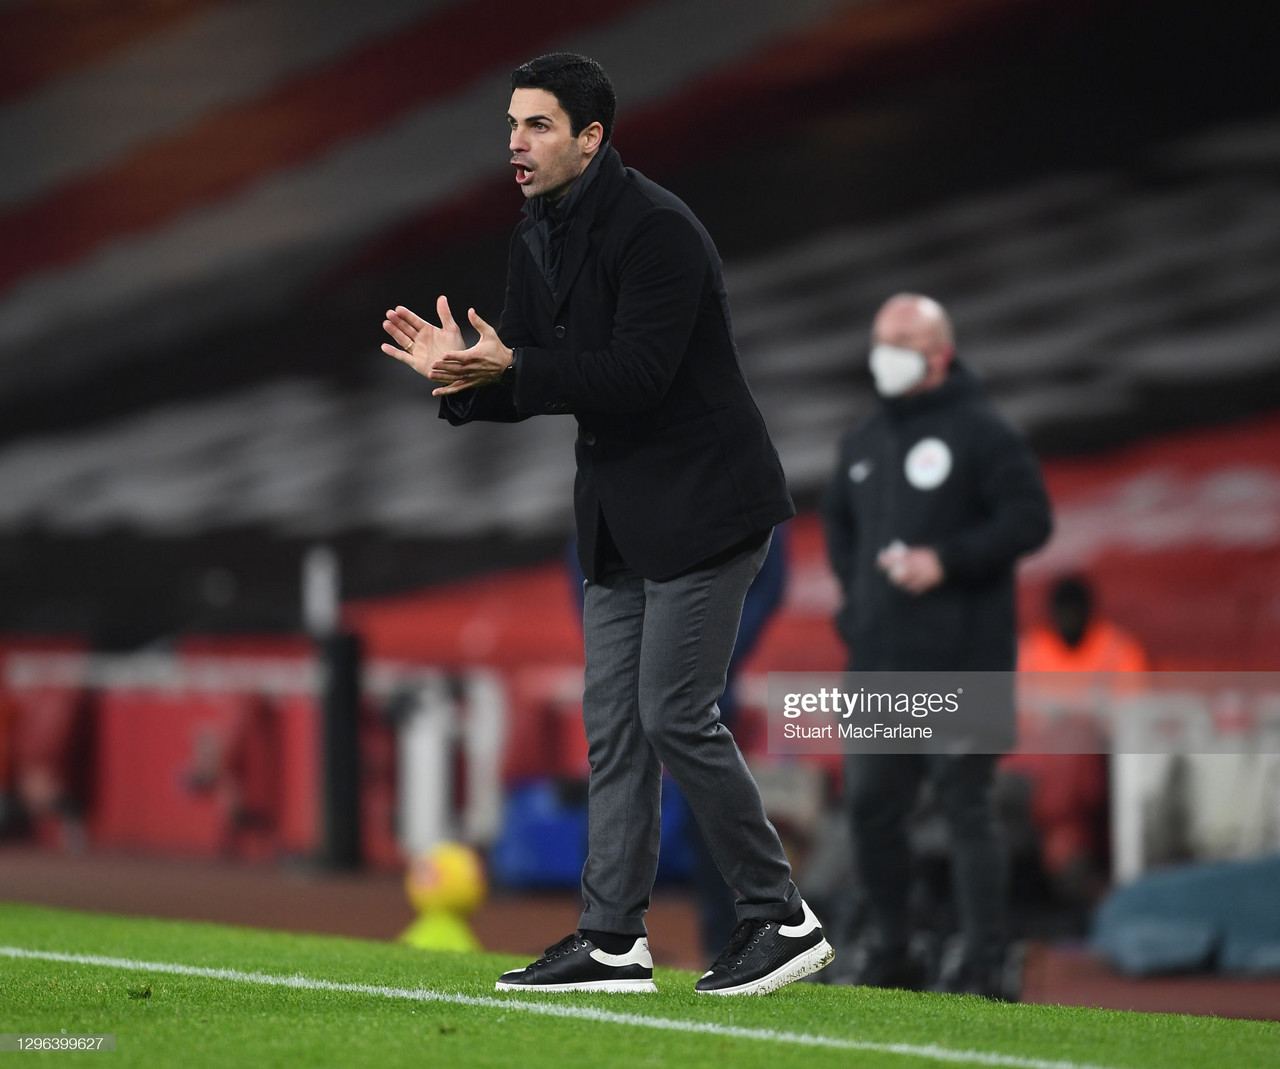 LONDON, ENGLAND - JANUARY 14: Arsenal manager Mikel Arteta during the Premier League match between Arsenal and Crystal Palace at Emirates Stadium on January 14, 2021 in London, England. Sporting stadiums around England remain under strict restrictions due to the Coronavirus Pandemic as Government social distancing laws prohibit fans inside venues resulting in games being played behind closed doors. (Photo by Stuart MacFarlane/Arsenal FC via Getty Images)